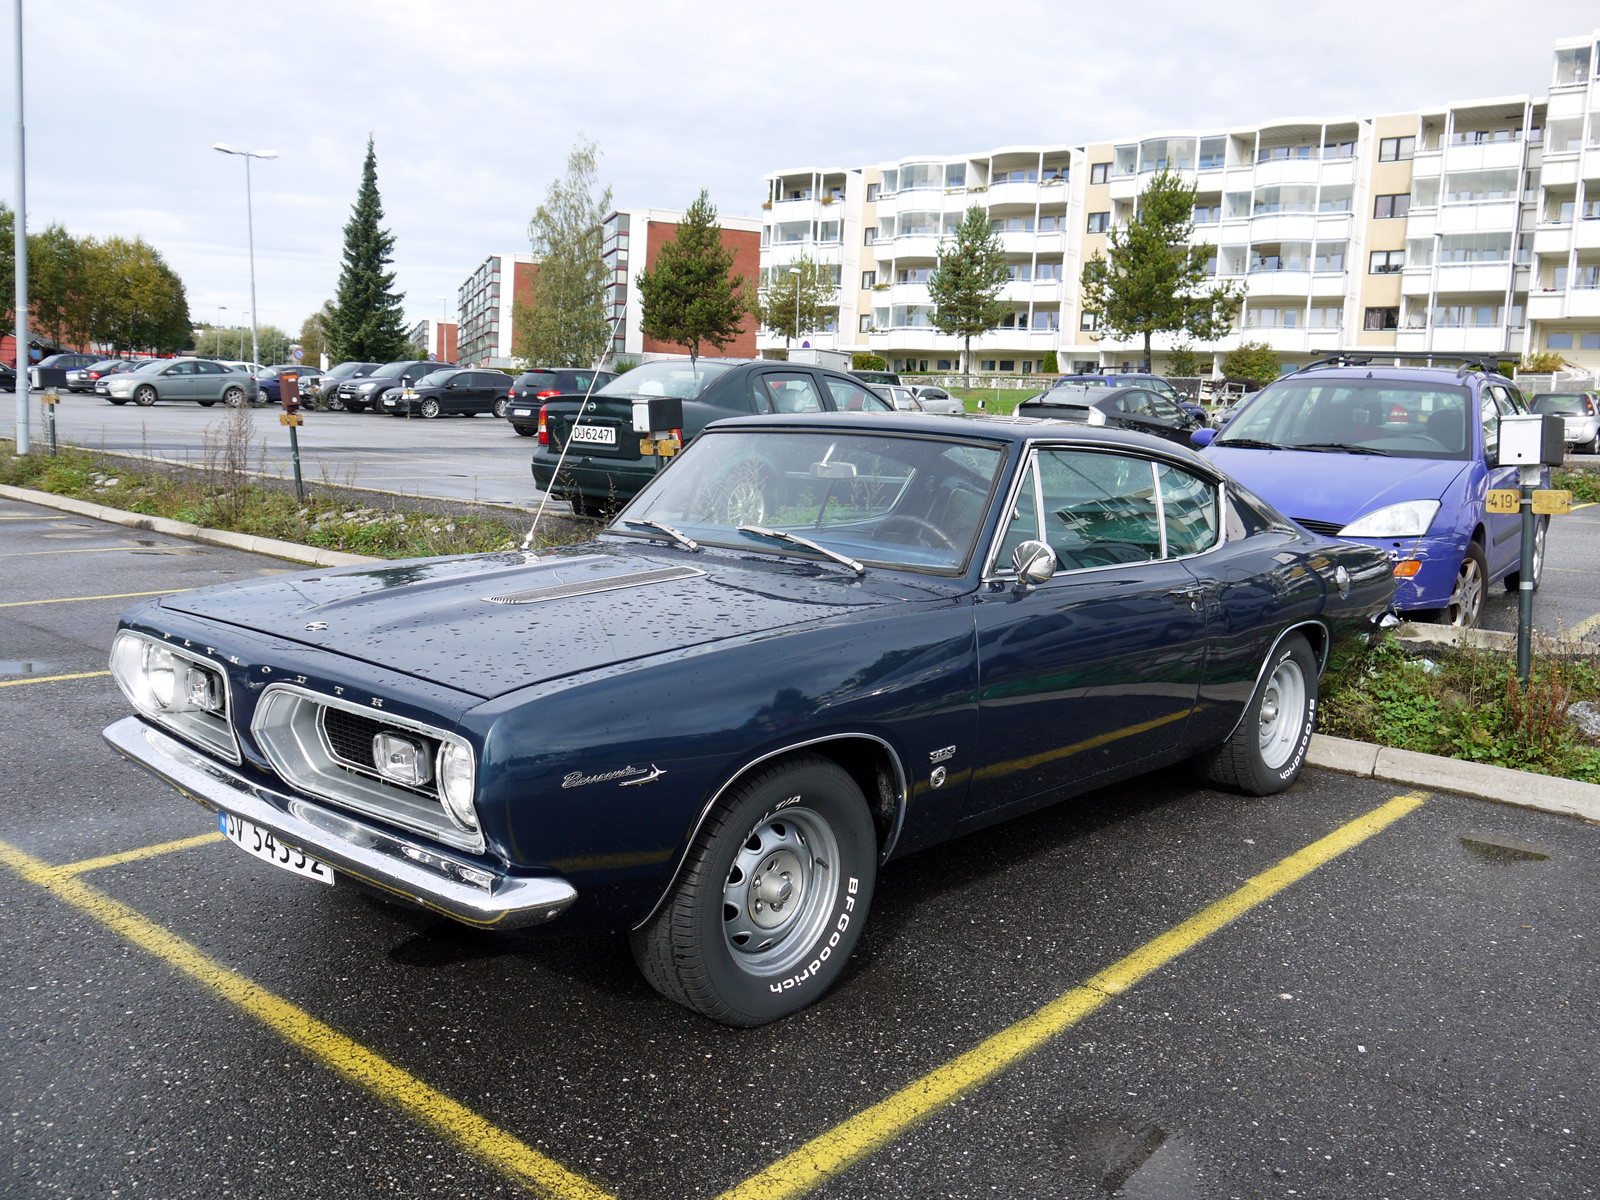 1967 Plymouth Barracuda Muscle pony car oslo Norway